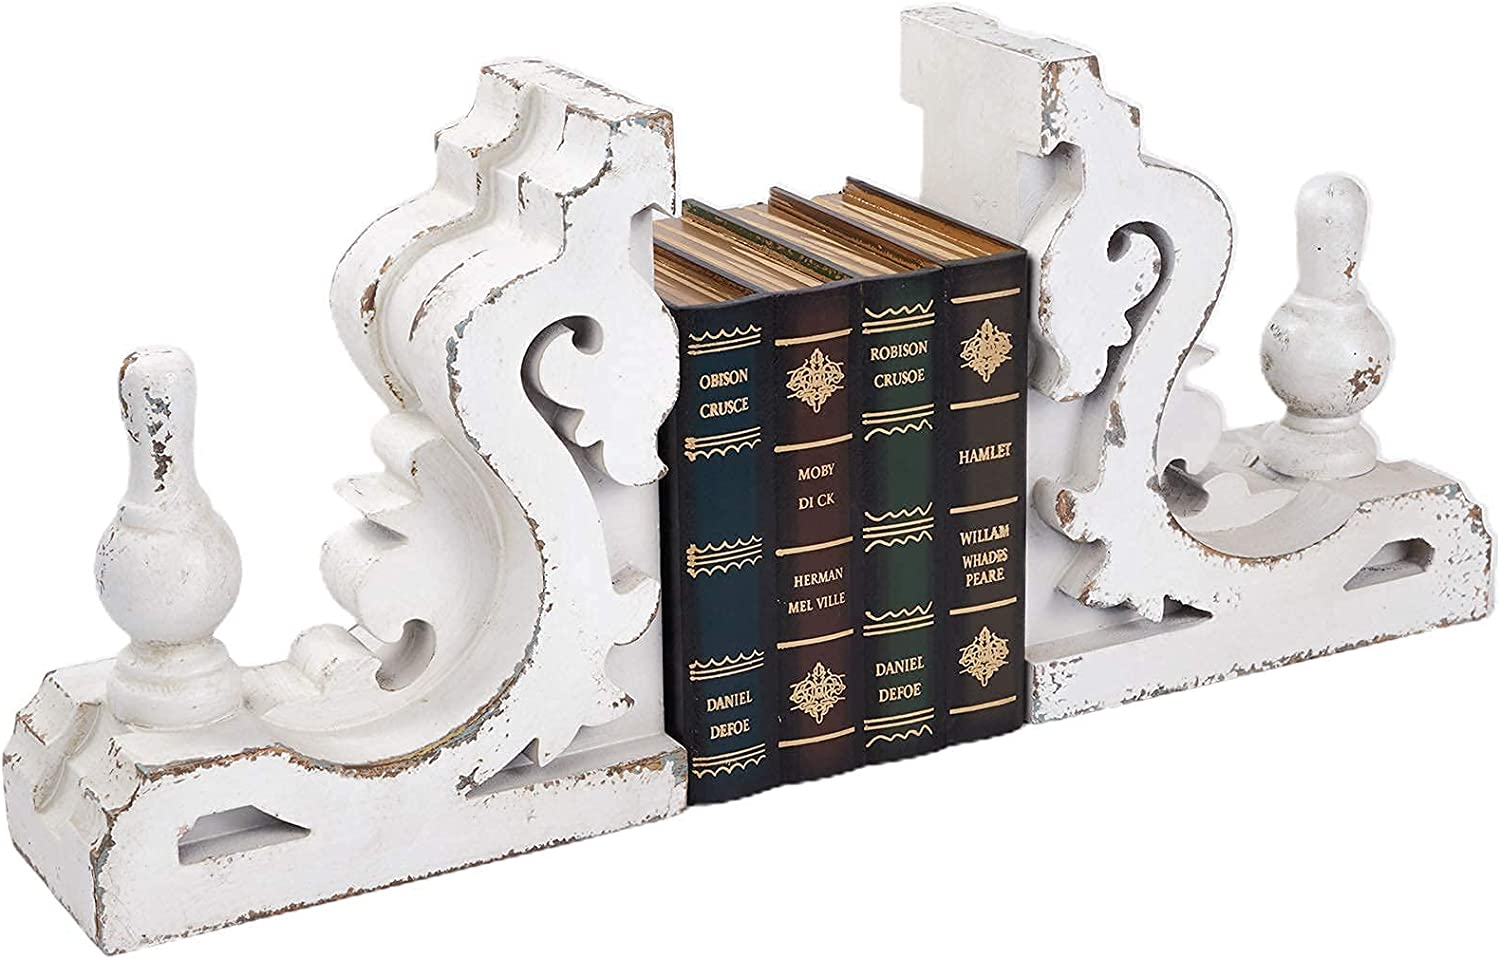 Distressed White Bookends Corbel Wall Shelf, Vintage Decorative Bookends, Bookends for Heavy Books (1 Pair/2 Pieces), Rustic Shelf Brackets, Book Ends for Home Decorative, Farmhouse Look White